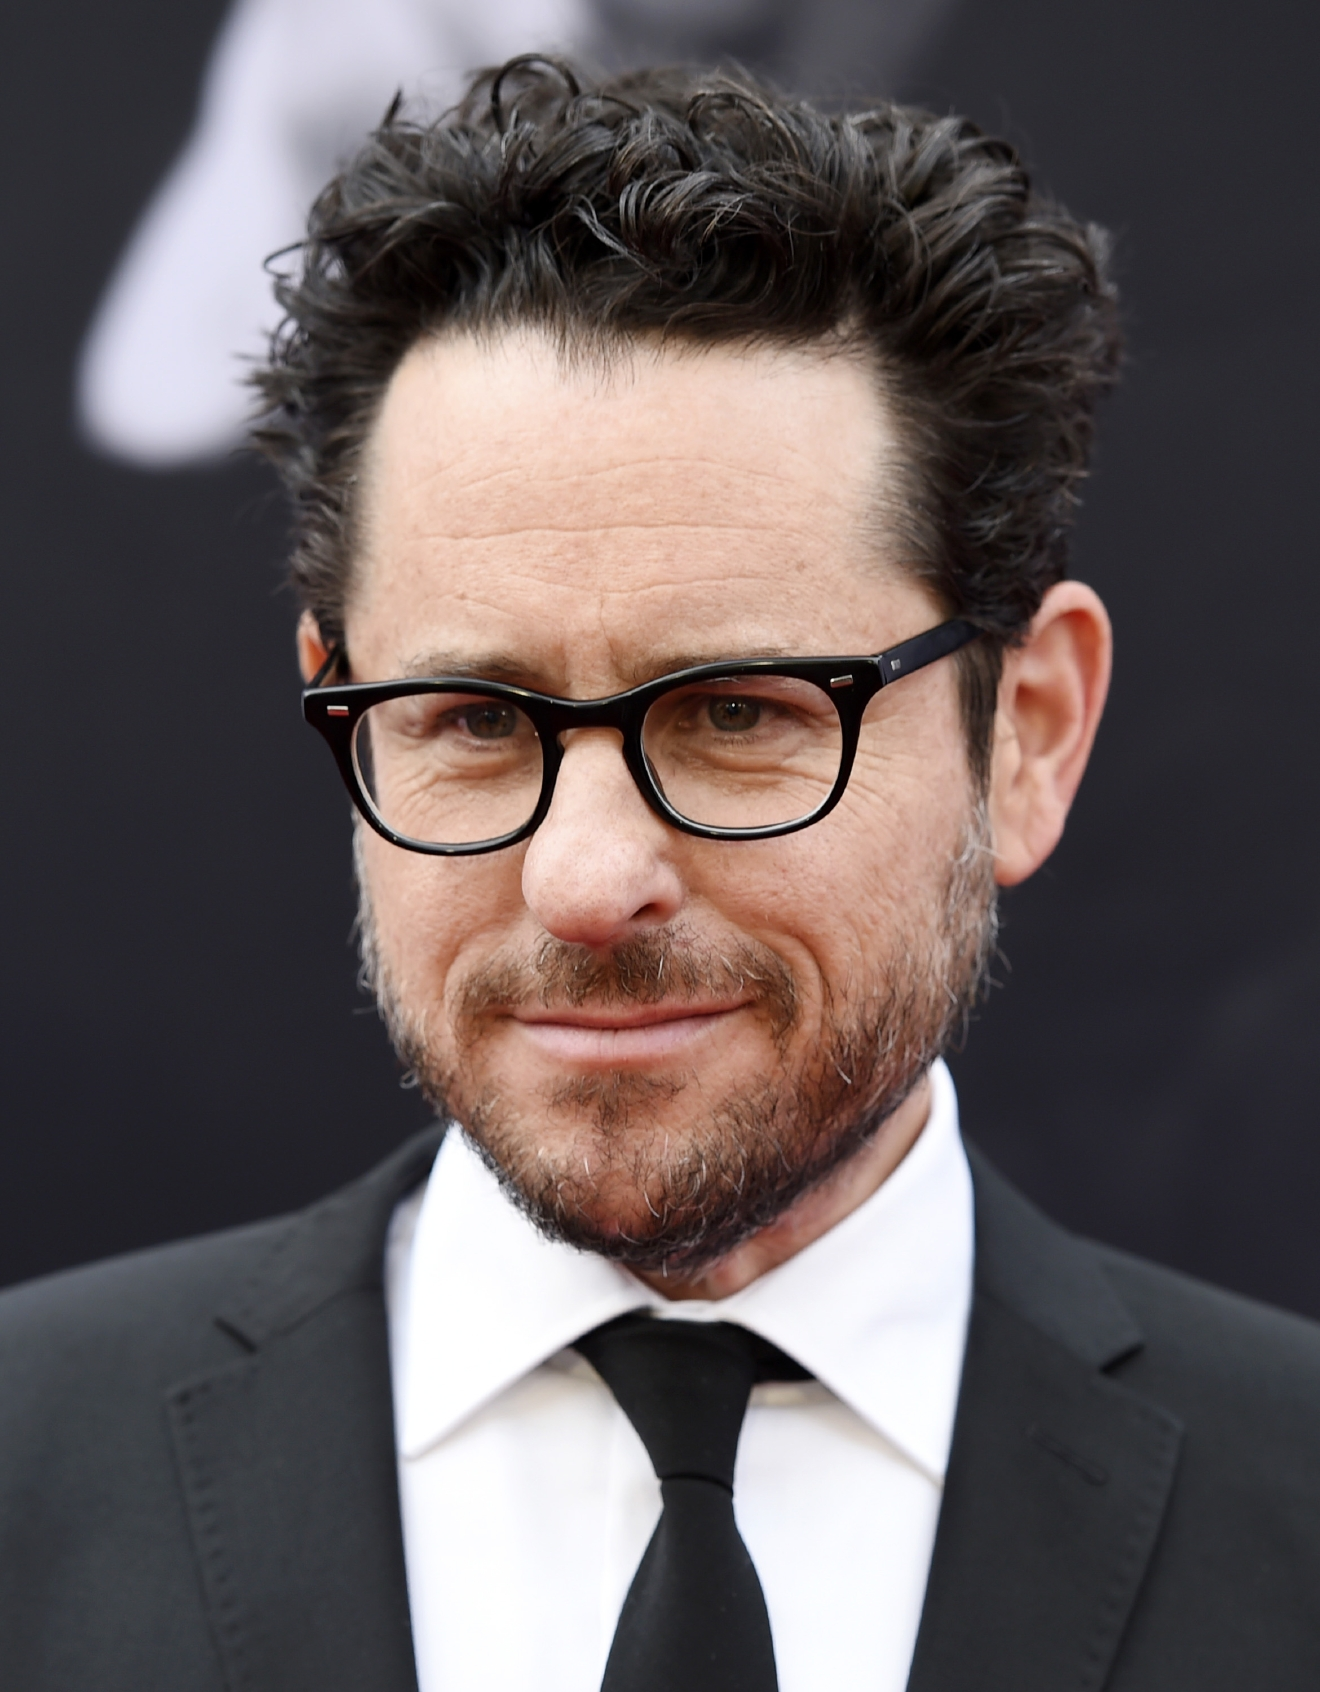 Filmmaker J.J. Abrams poses at the 2016 AFI Life Achievement Award Gala Tribute to John Williams at the Dolby Theatre on Thursday, June 9, 2016, in Los Angeles. (Photo by Chris Pizzello/Invision/AP)